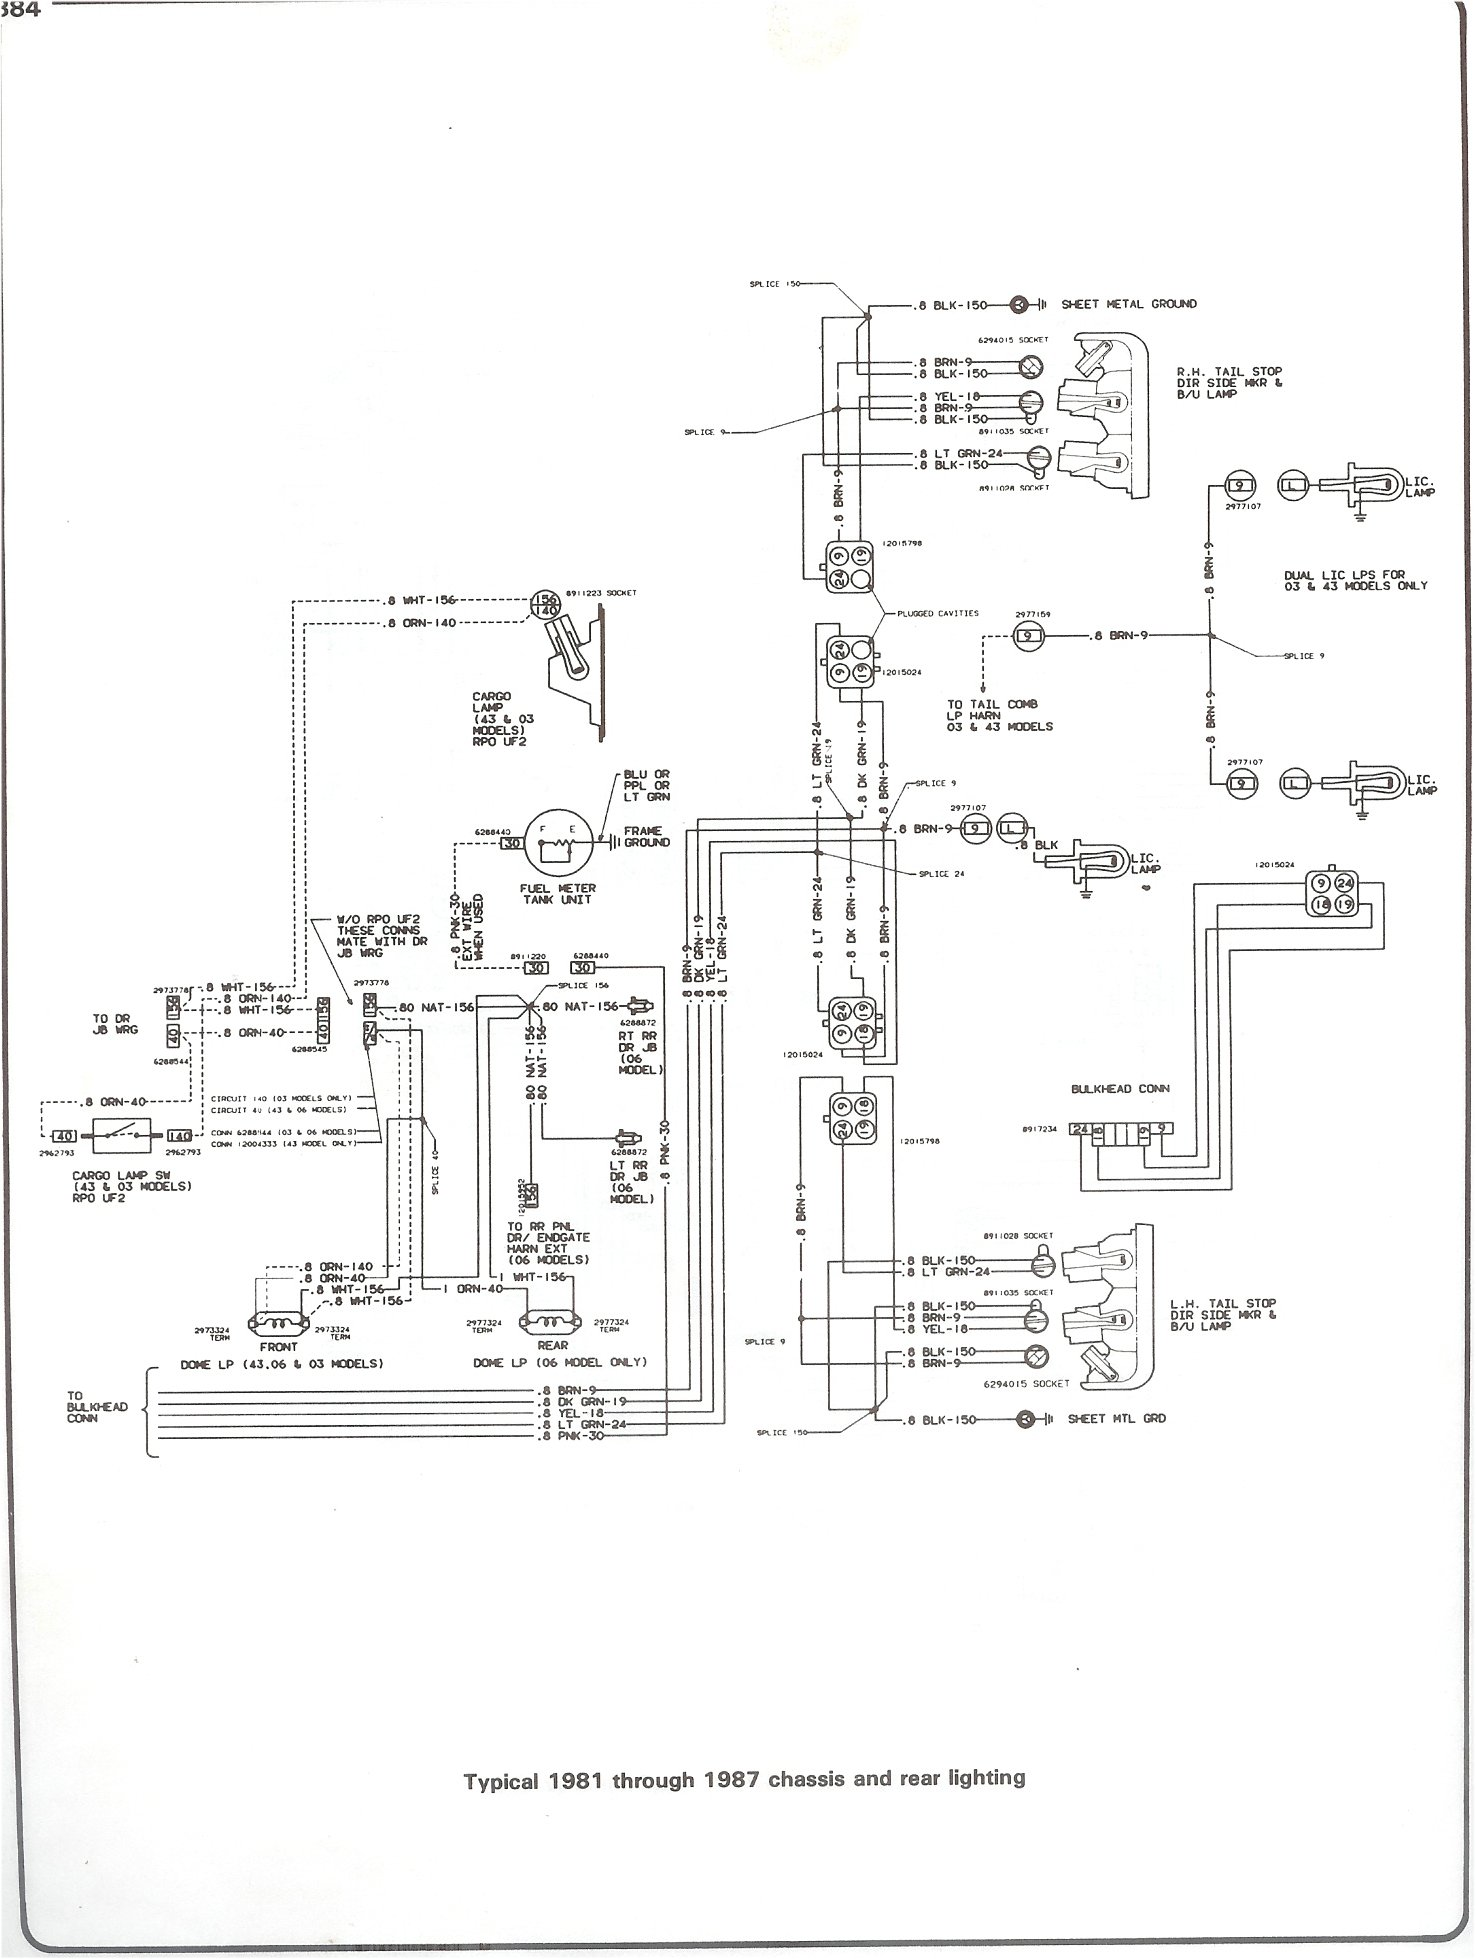 Plete 73 87 wiring diagrams 81 87 chassis and rear lighting